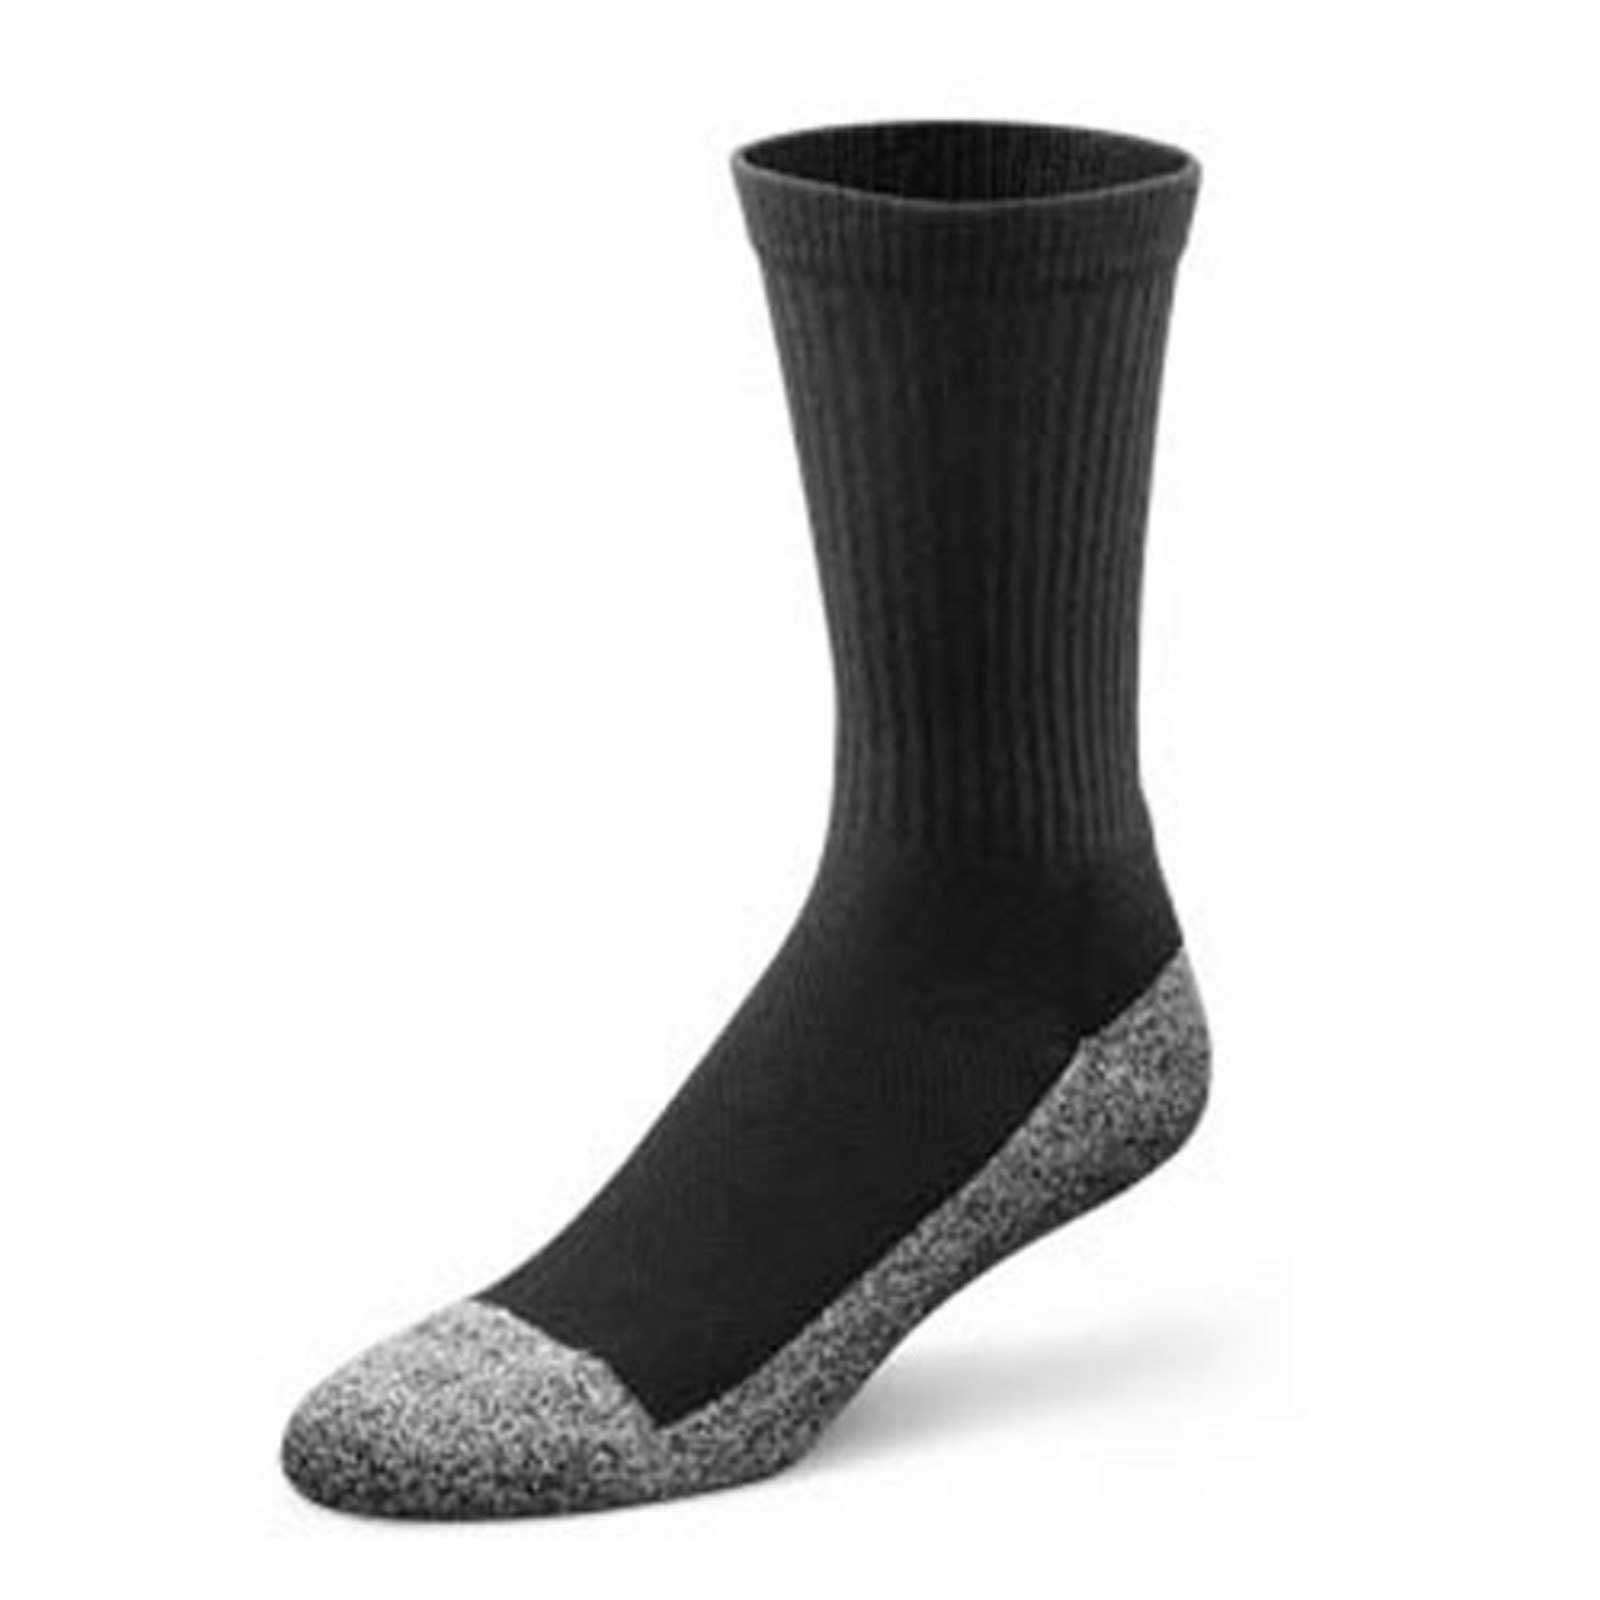 Dr Comfort Extra Roomy Socks For People With Edema